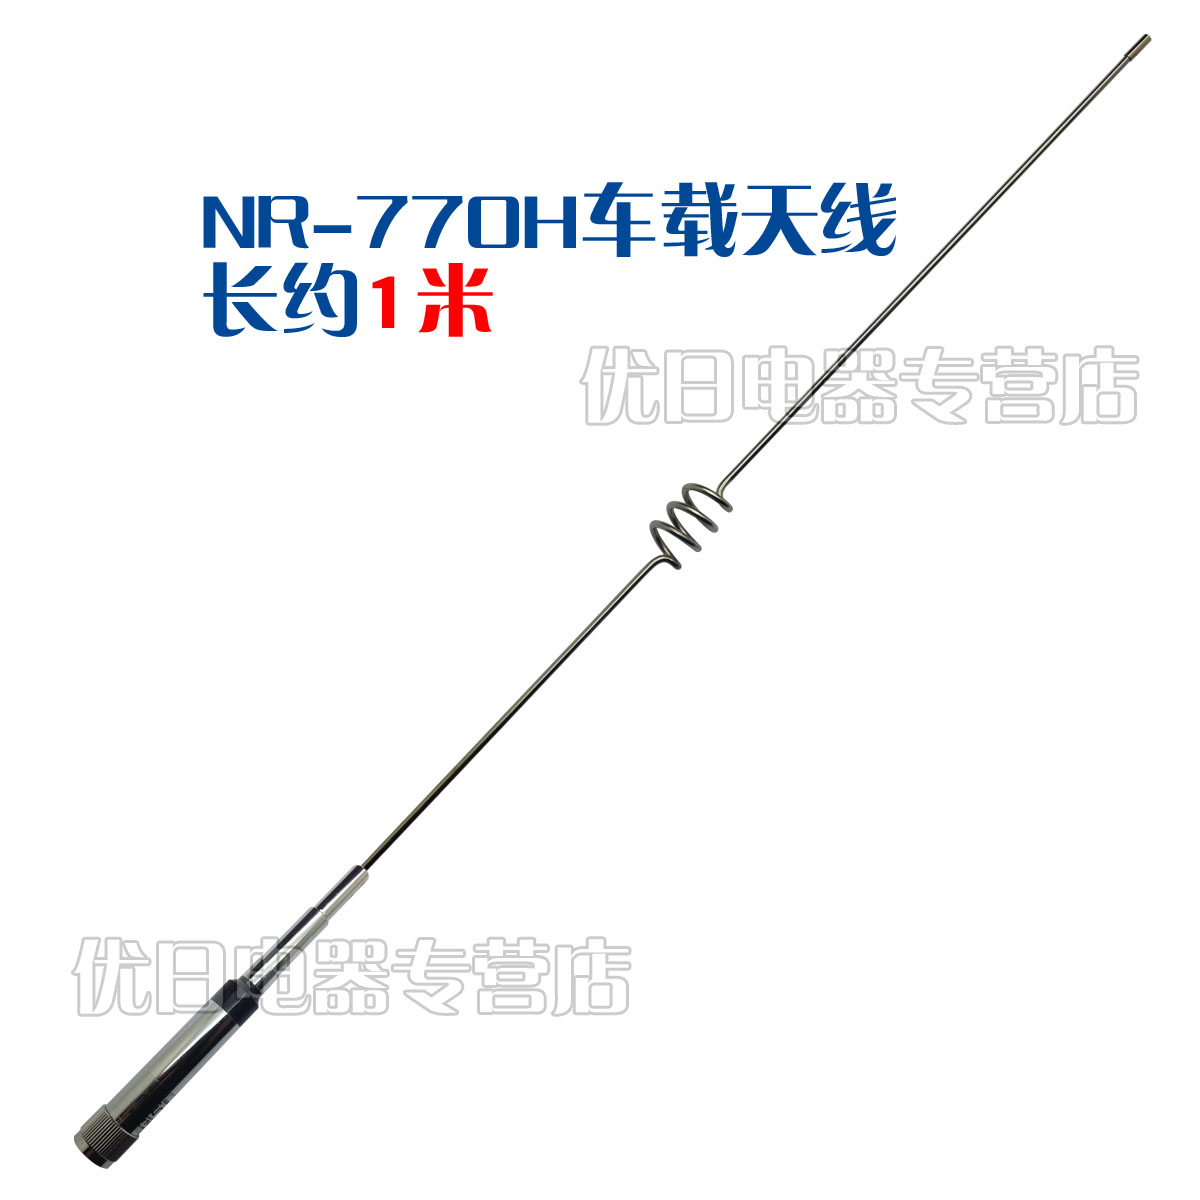 Excellent day â â car antenna nr-770h â car seedling â double segment car antenna car antenna high gain sill